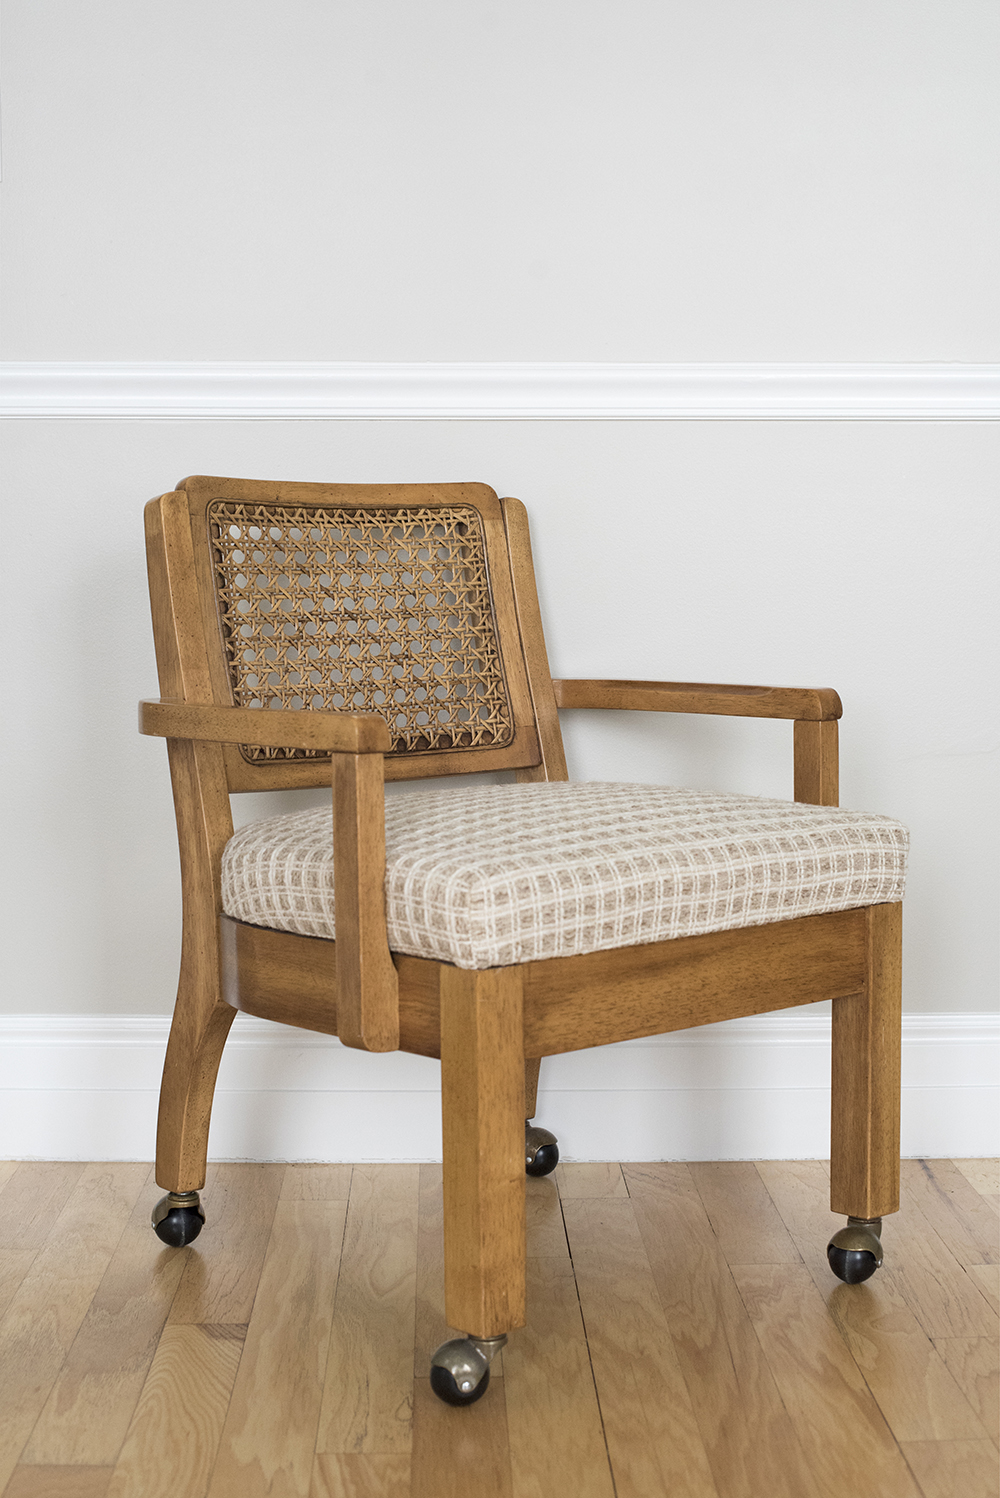 How to Upholster the Seat of a Chair - roomfortuesday.com & How to Upholster the Seat of a Chair - Room for Tuesday